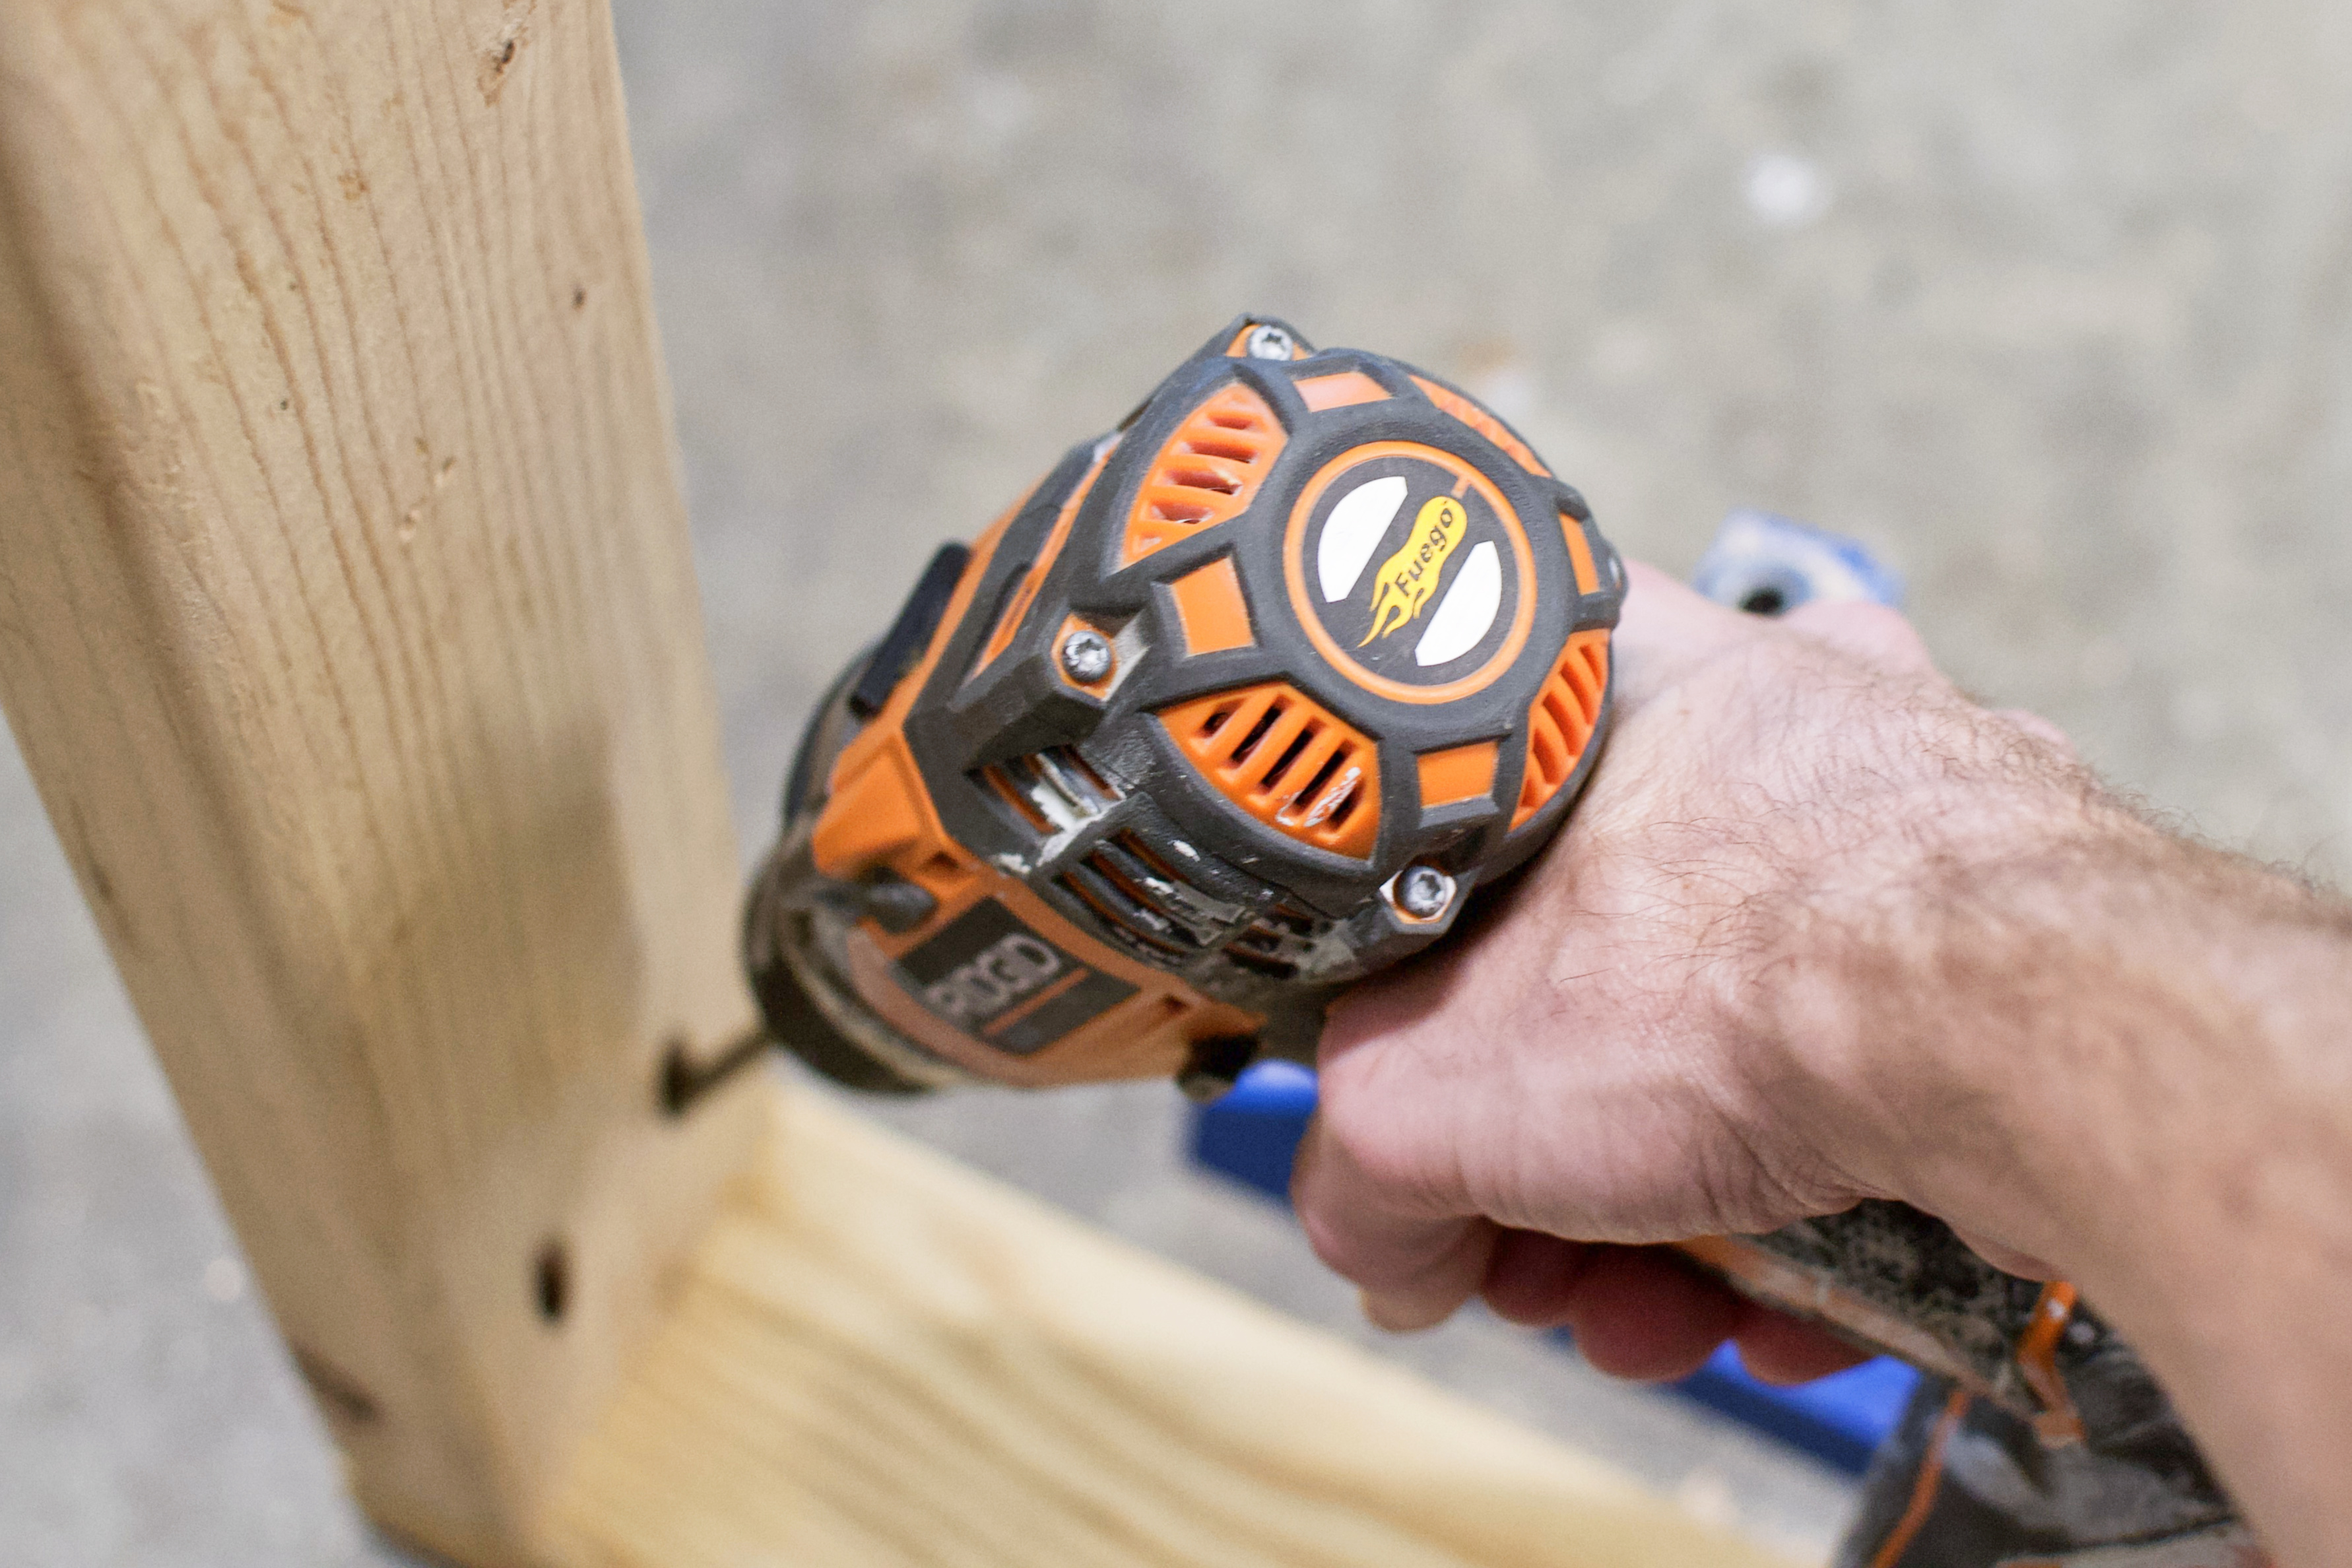 How to use a Kreg Jig for Pocket Hole Drilling, Screwing & Wood